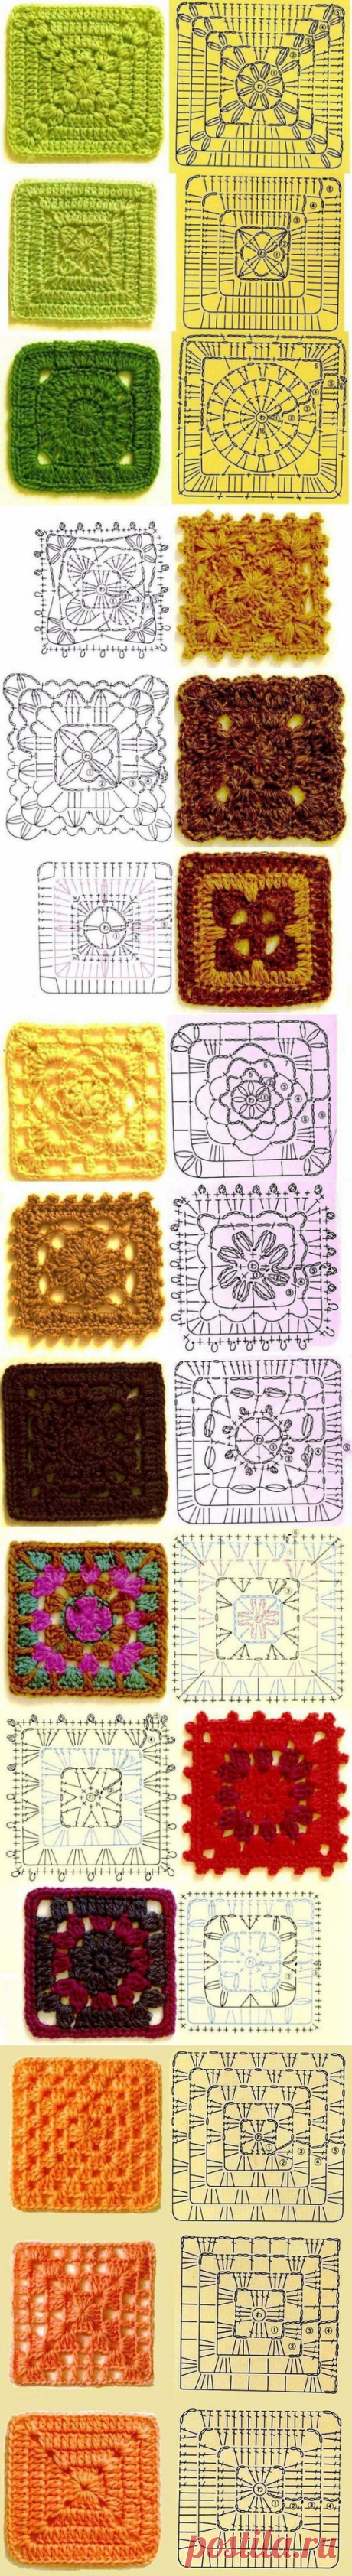 Grandmother's squares in knitting - 30 schemes.